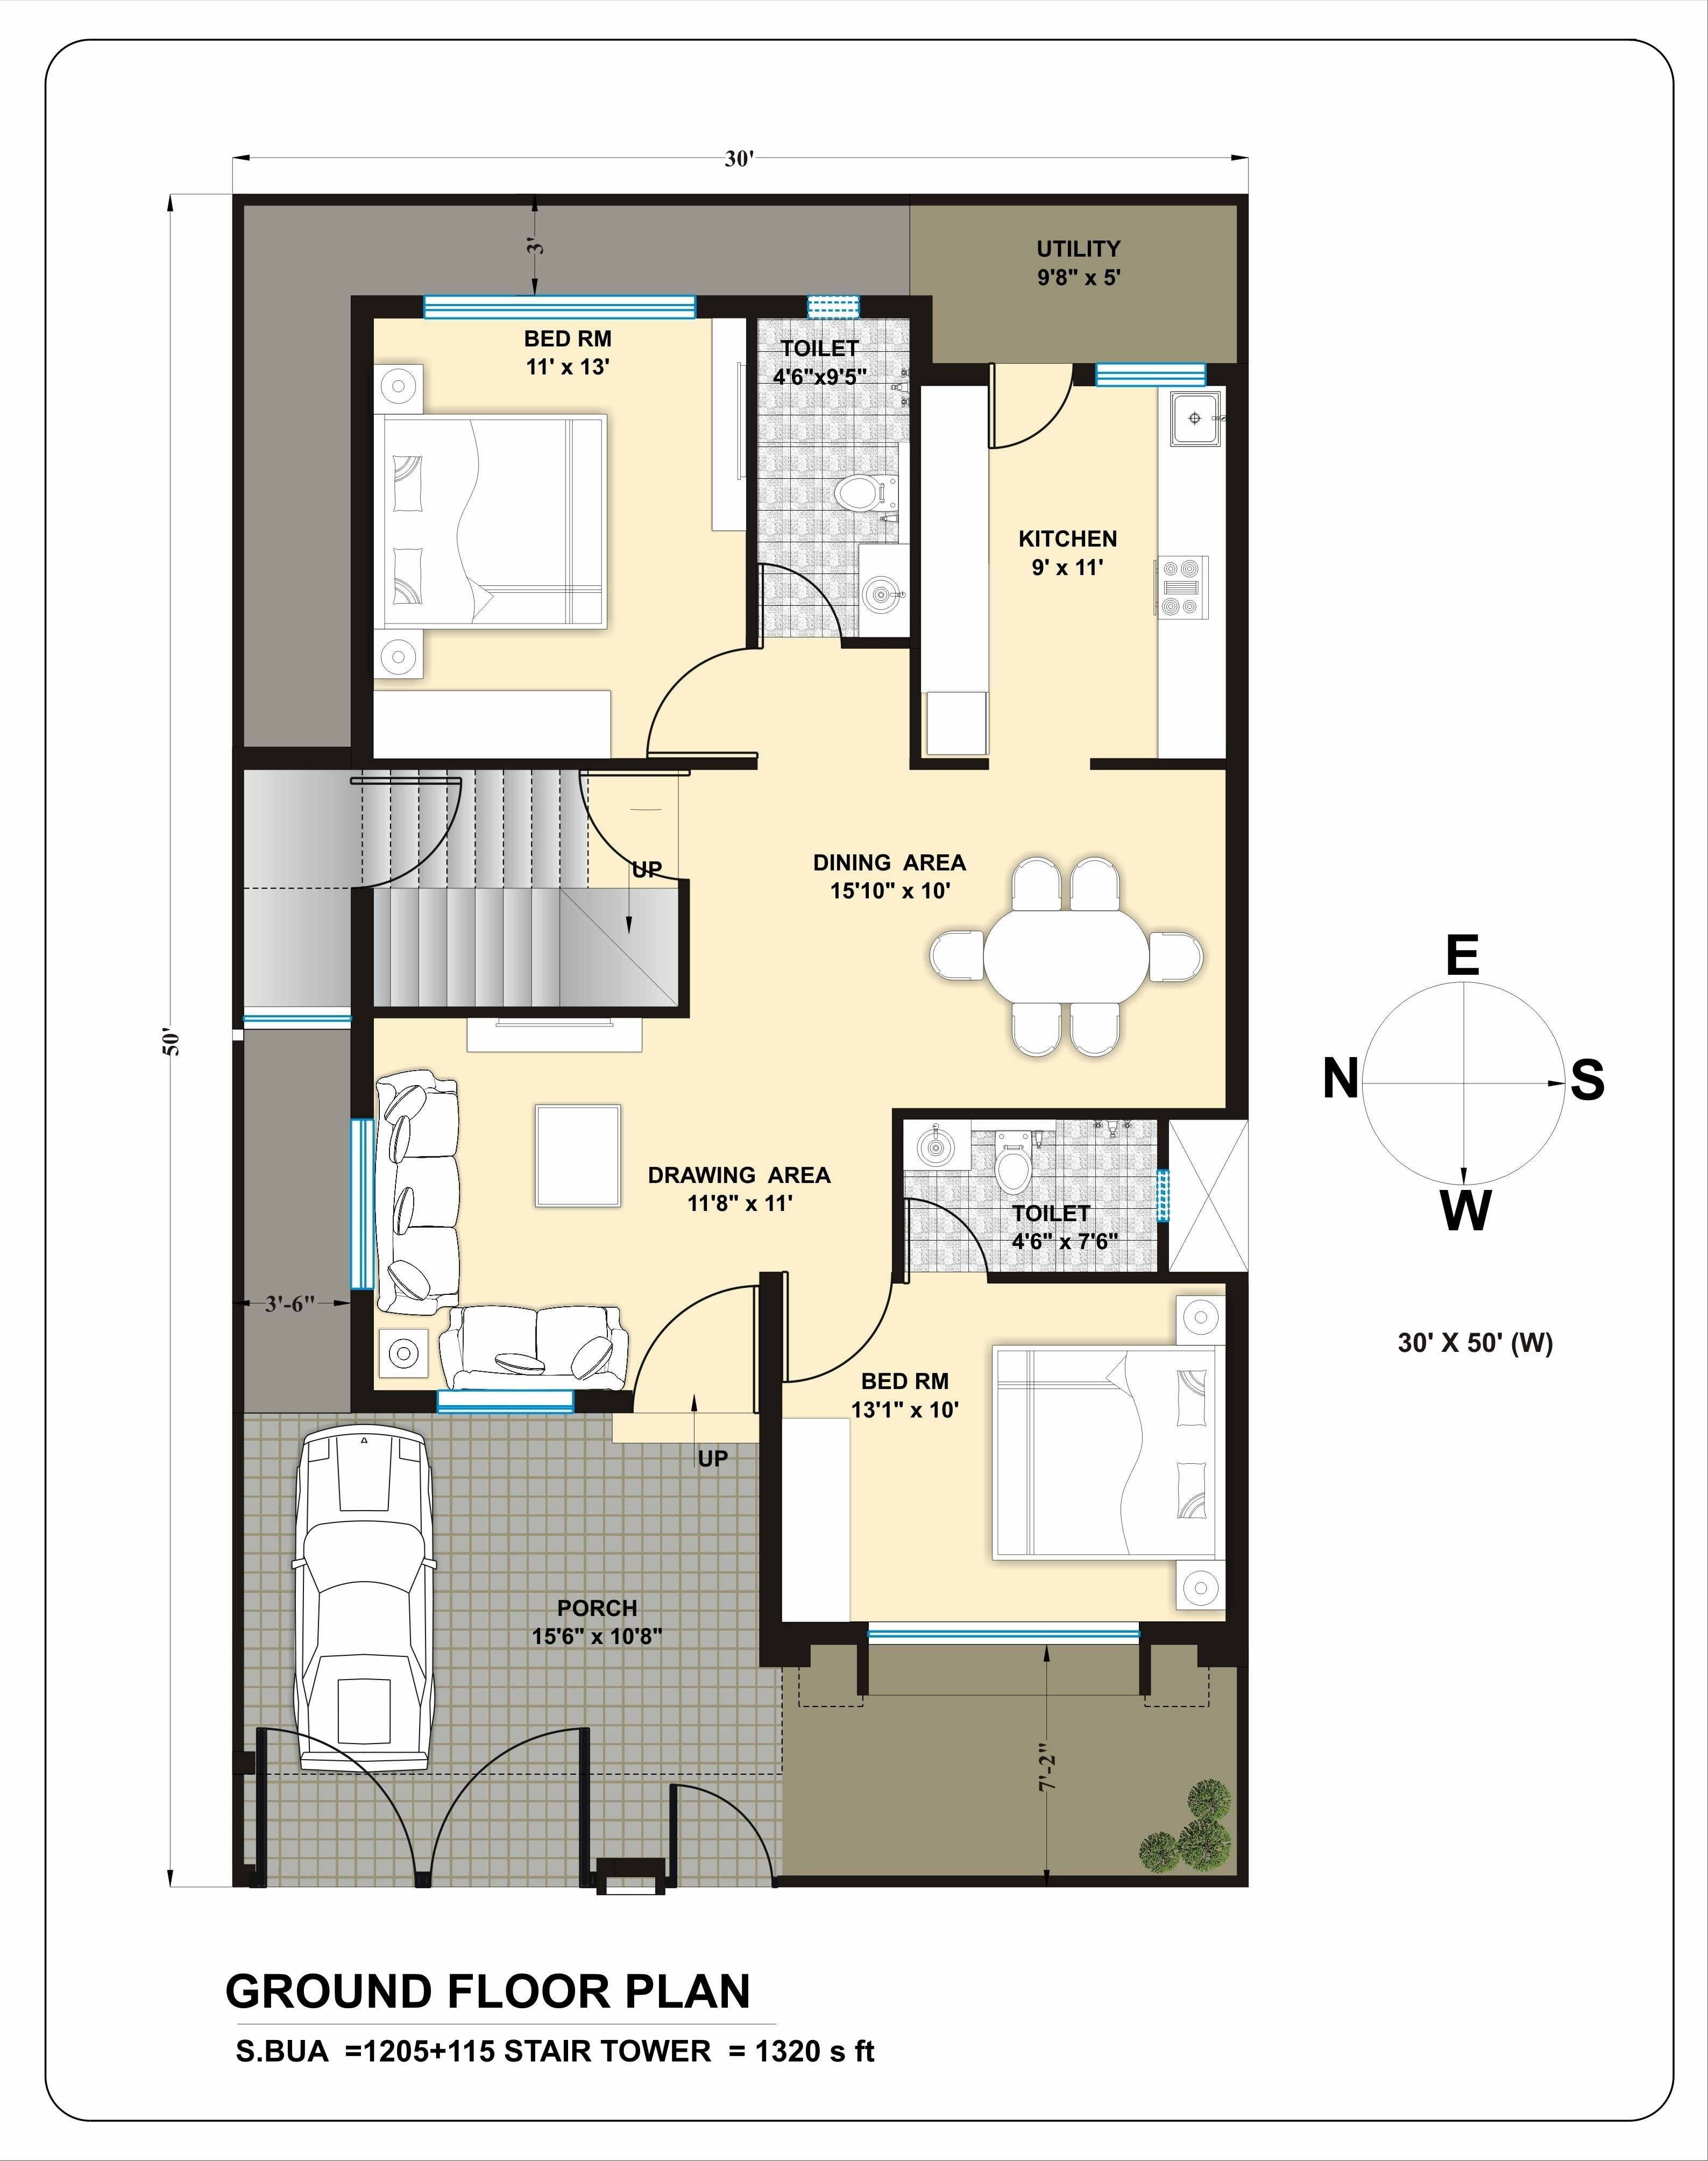 Gorgeous best of house plans floor concept bright by also north face plan for  feet area home designs interior rh pinterest